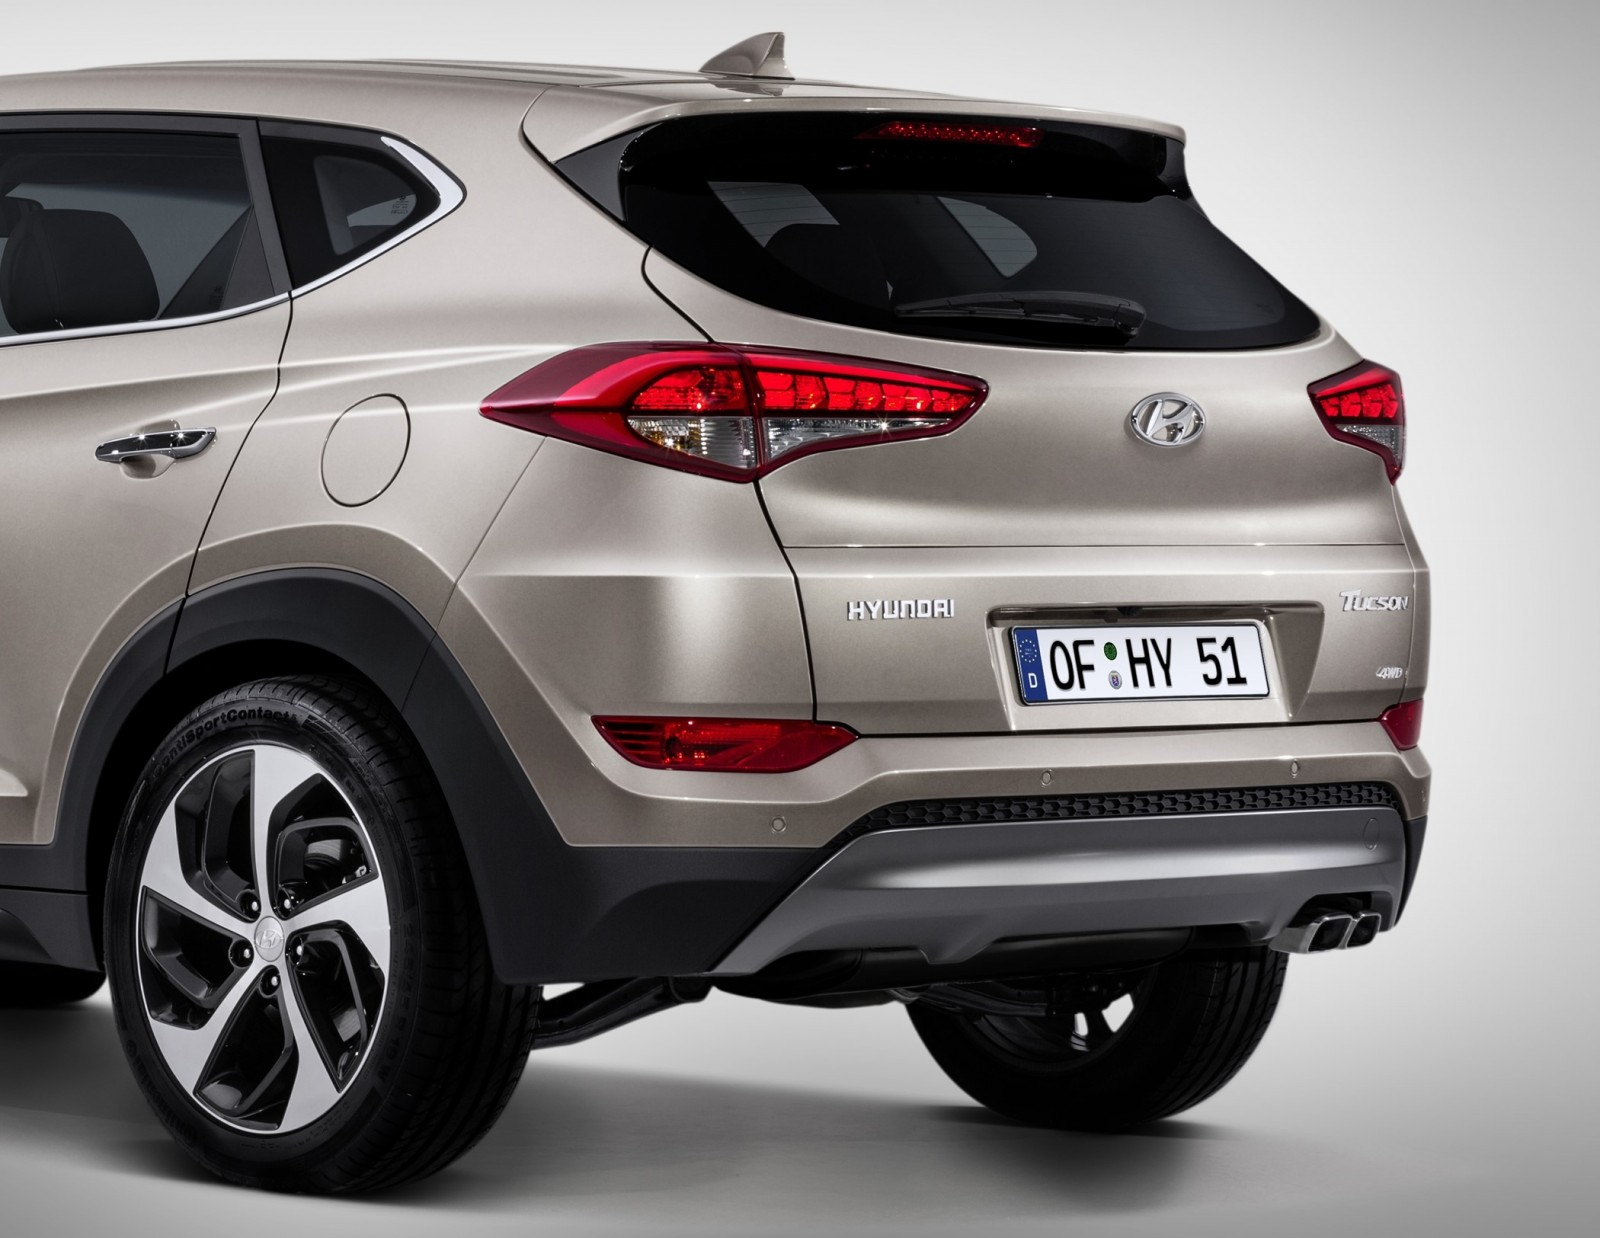 2016 hyundai tucson. Black Bedroom Furniture Sets. Home Design Ideas